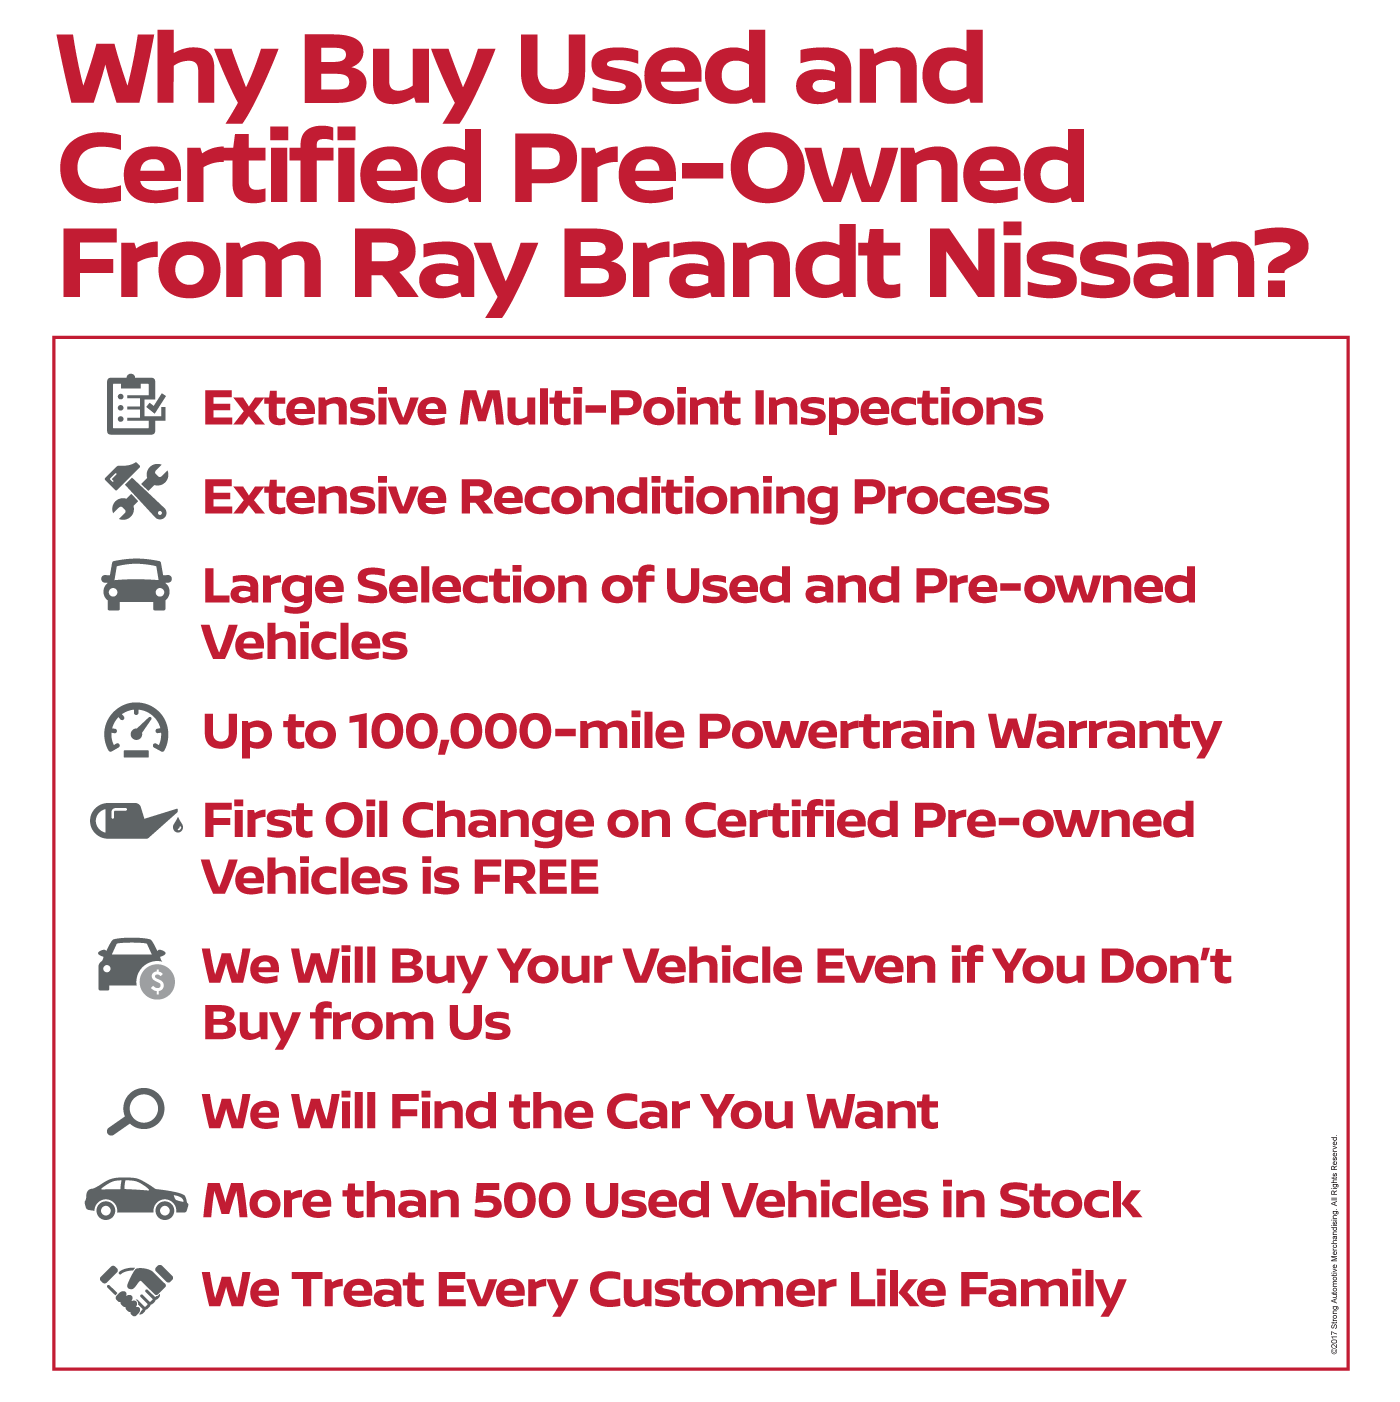 Why Buy Used and Certified Pre-Owned from Ray Brandt Nissan?